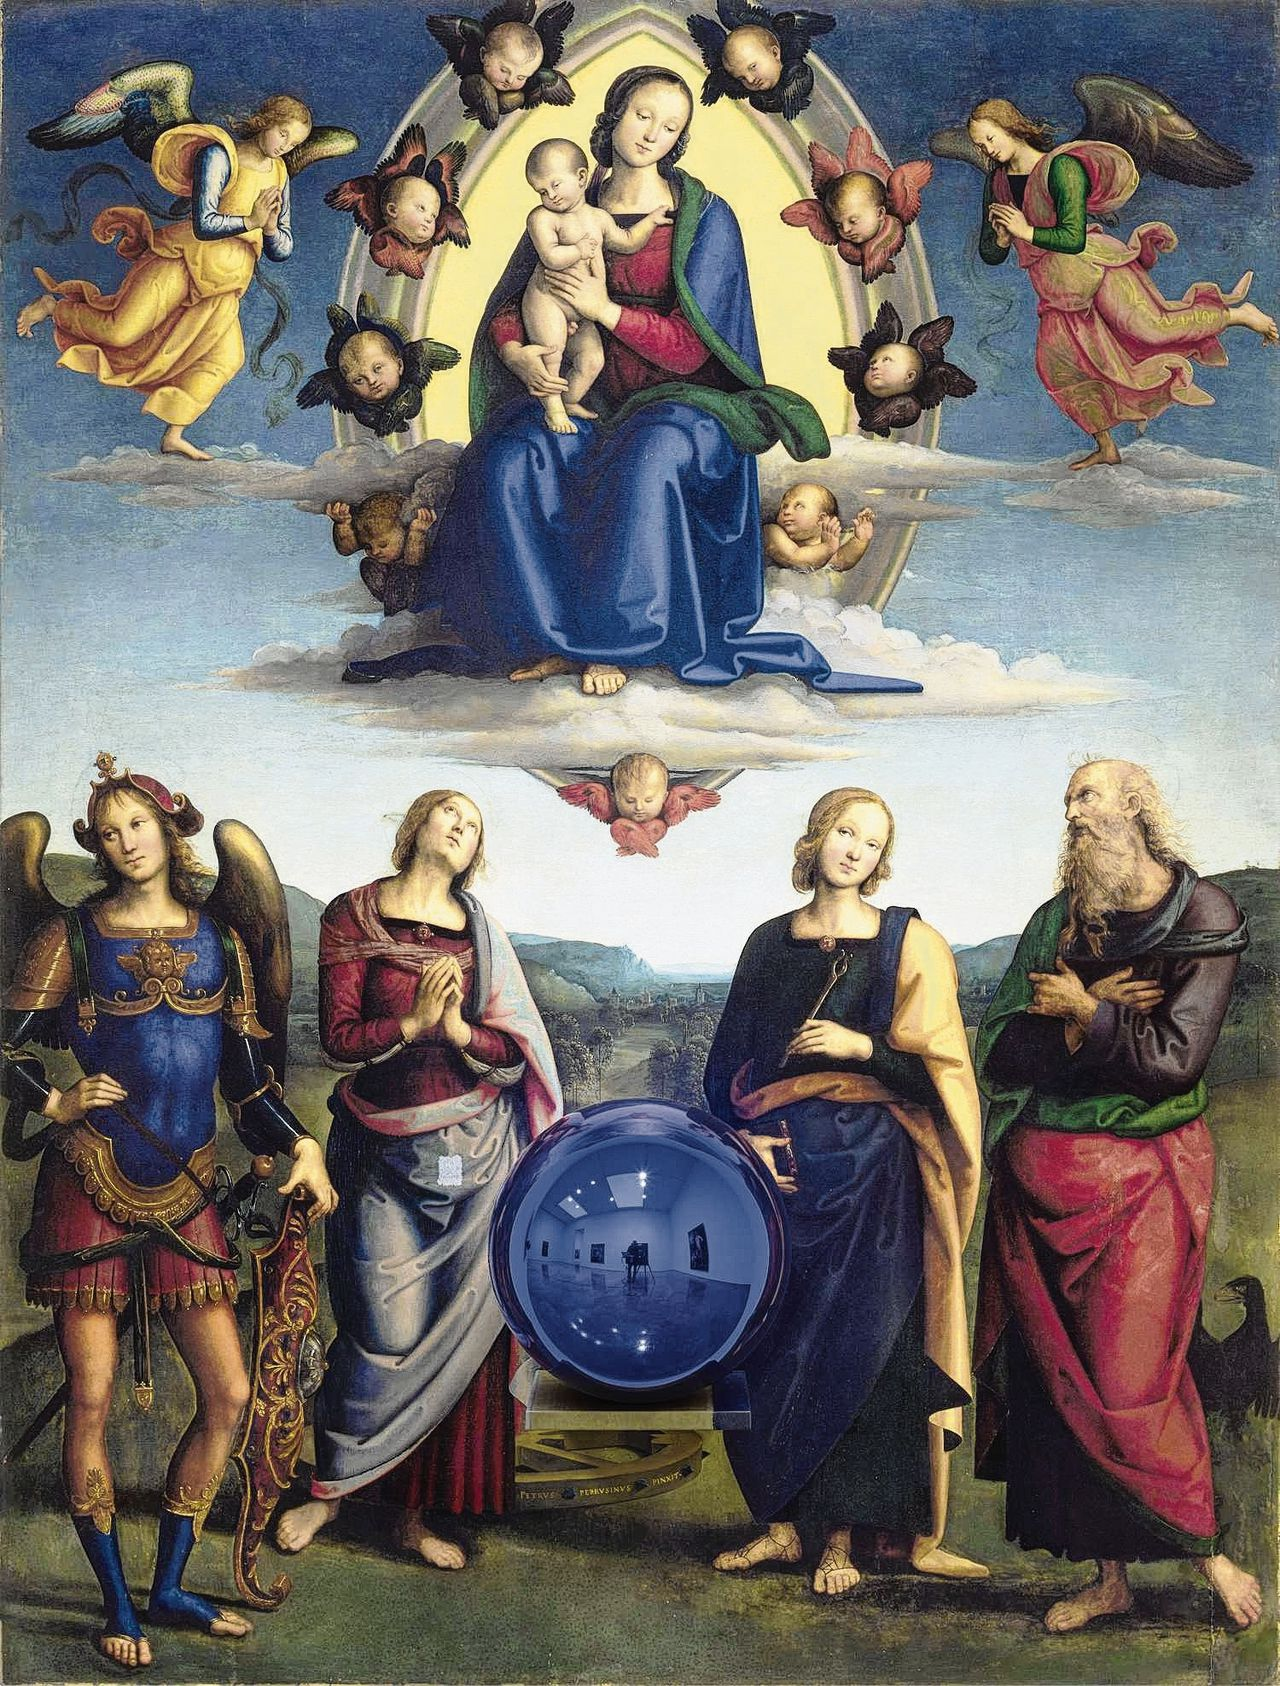 Jeff Koons, Gazing Ball (Perugino Madonna and Child with Four Saints), 2014–15